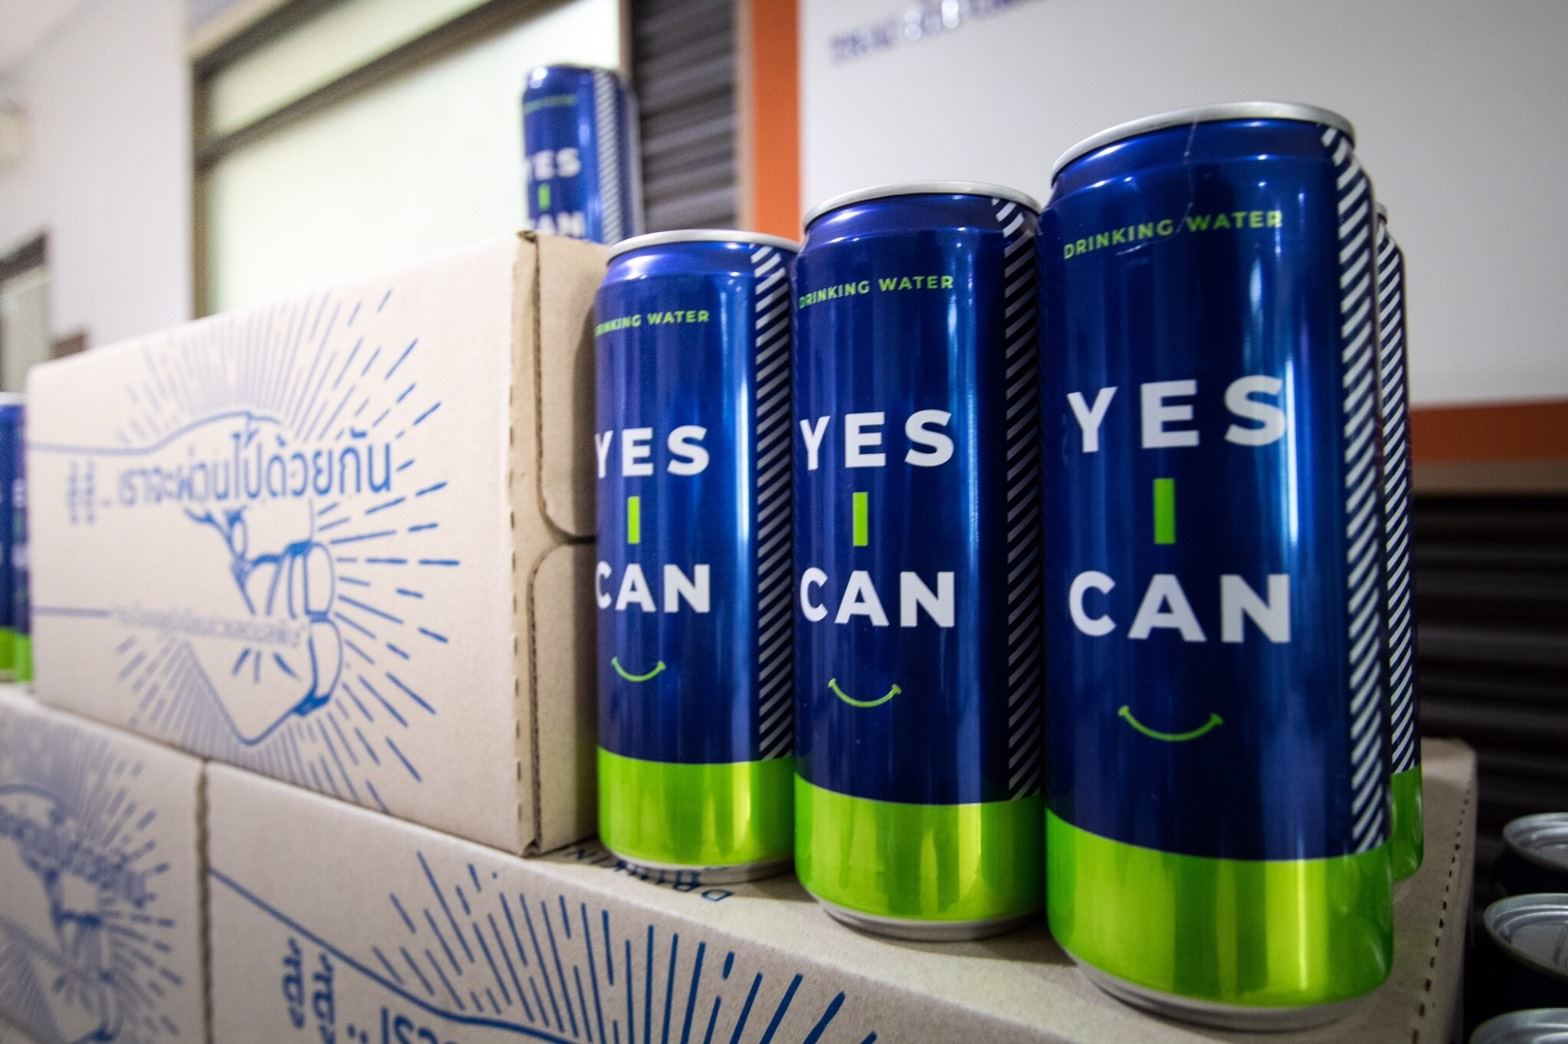 Yes I can cans closeup